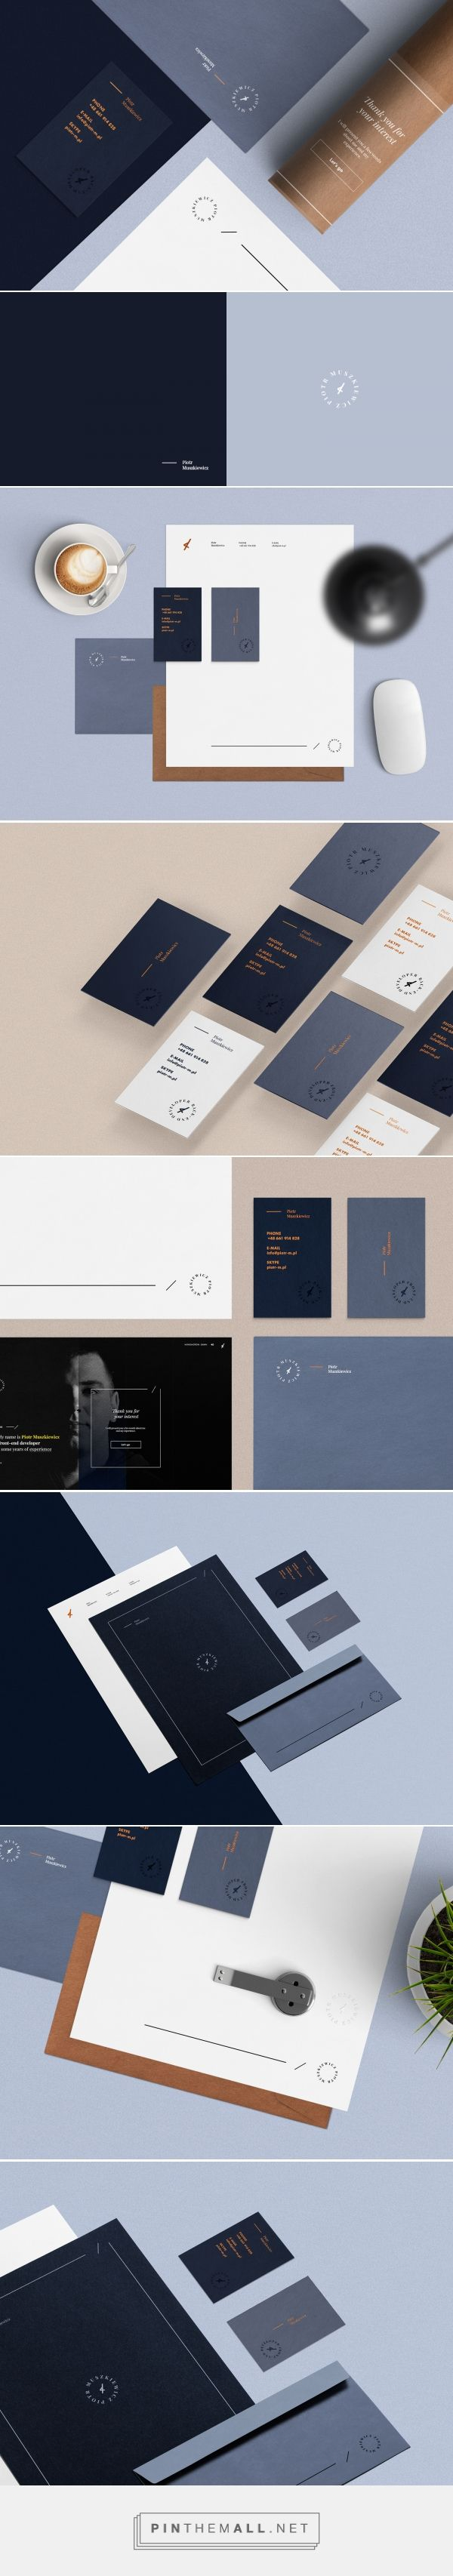 Piotr Muszkiewicz Developer Branding by Tomasz Mazurczak | Fivestar Branding Agency – Design and Branding Agency & Curated Inspiration Gallery